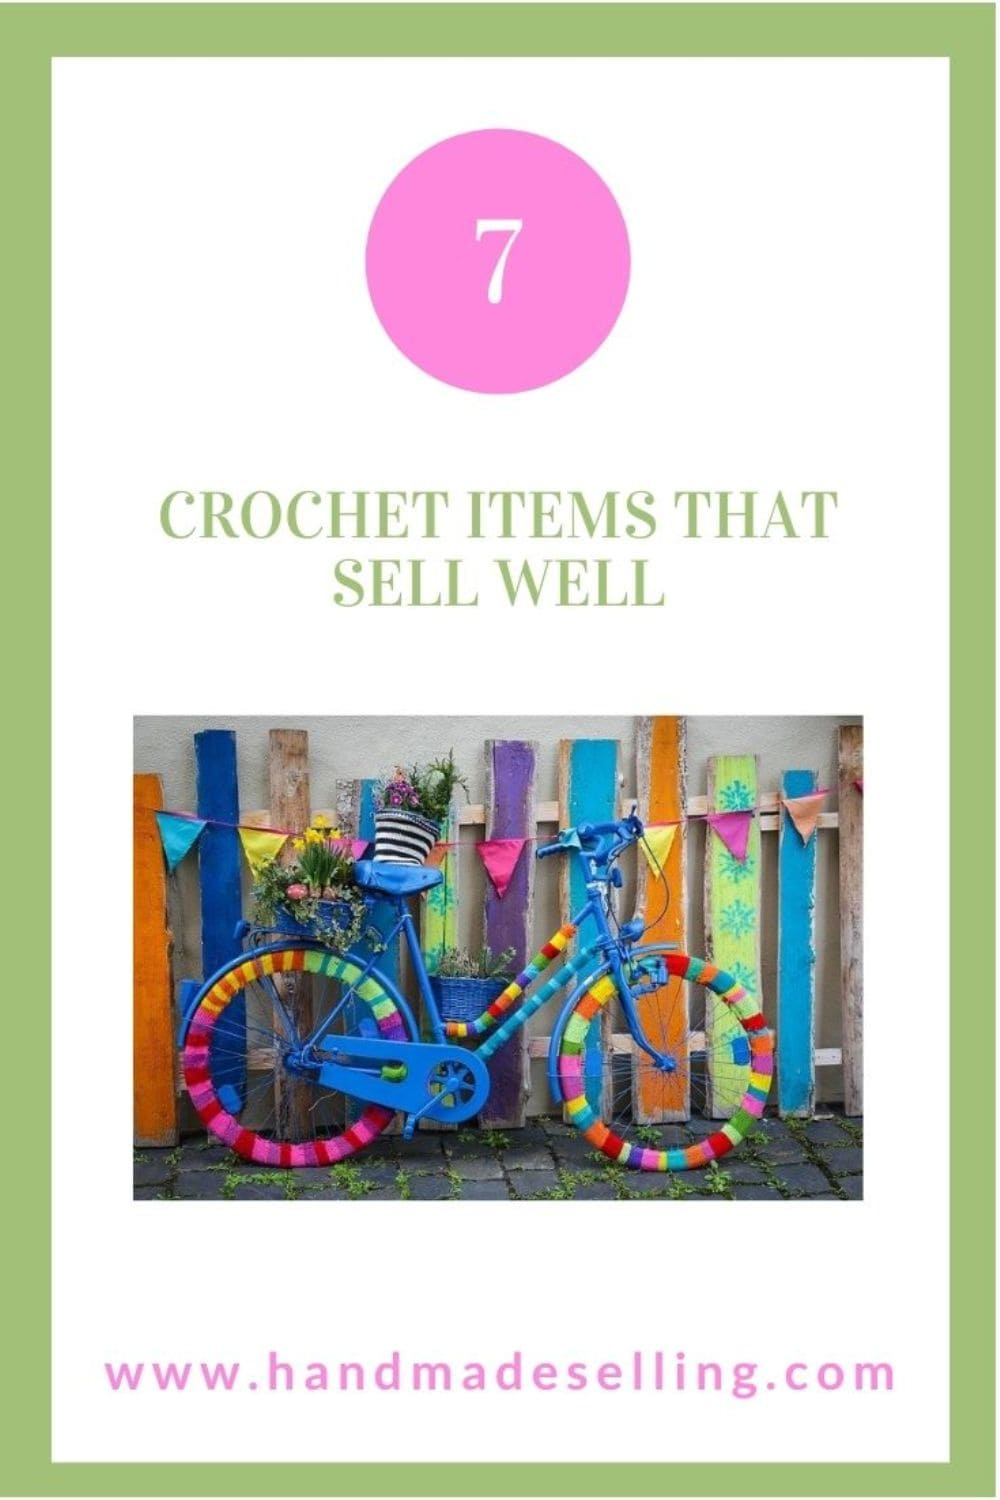 crochet items that sell